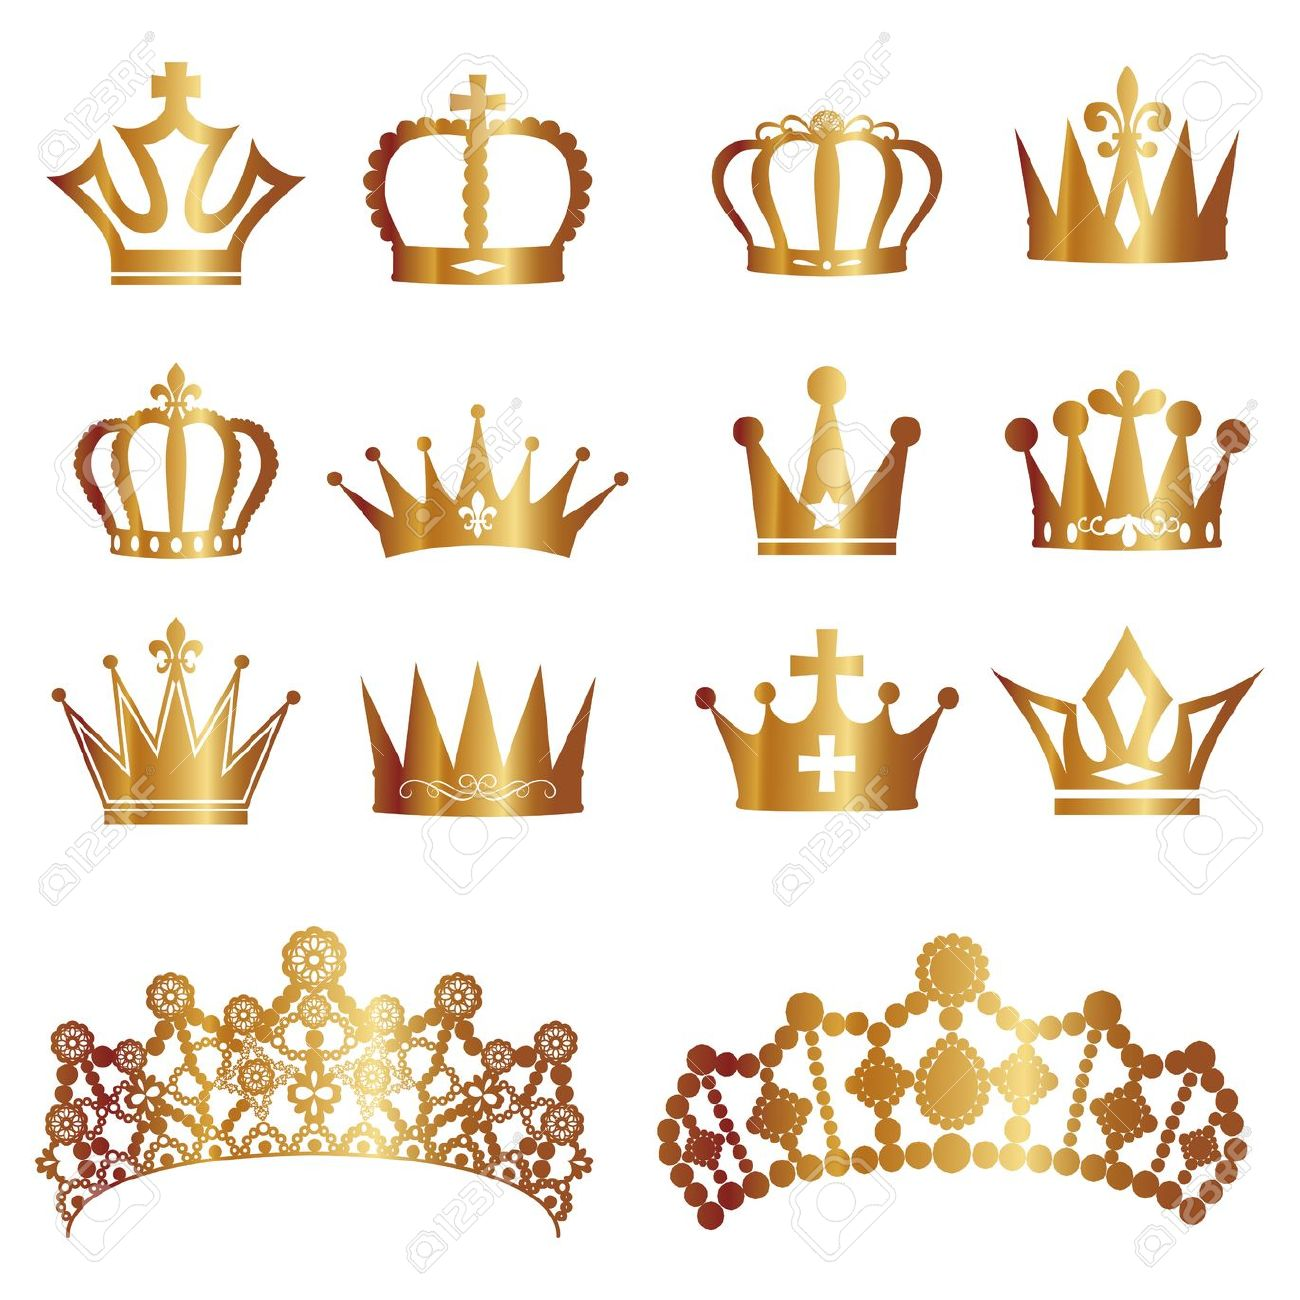 20,723 Queen Crown Stock Vector Illustration And Royalty Free.